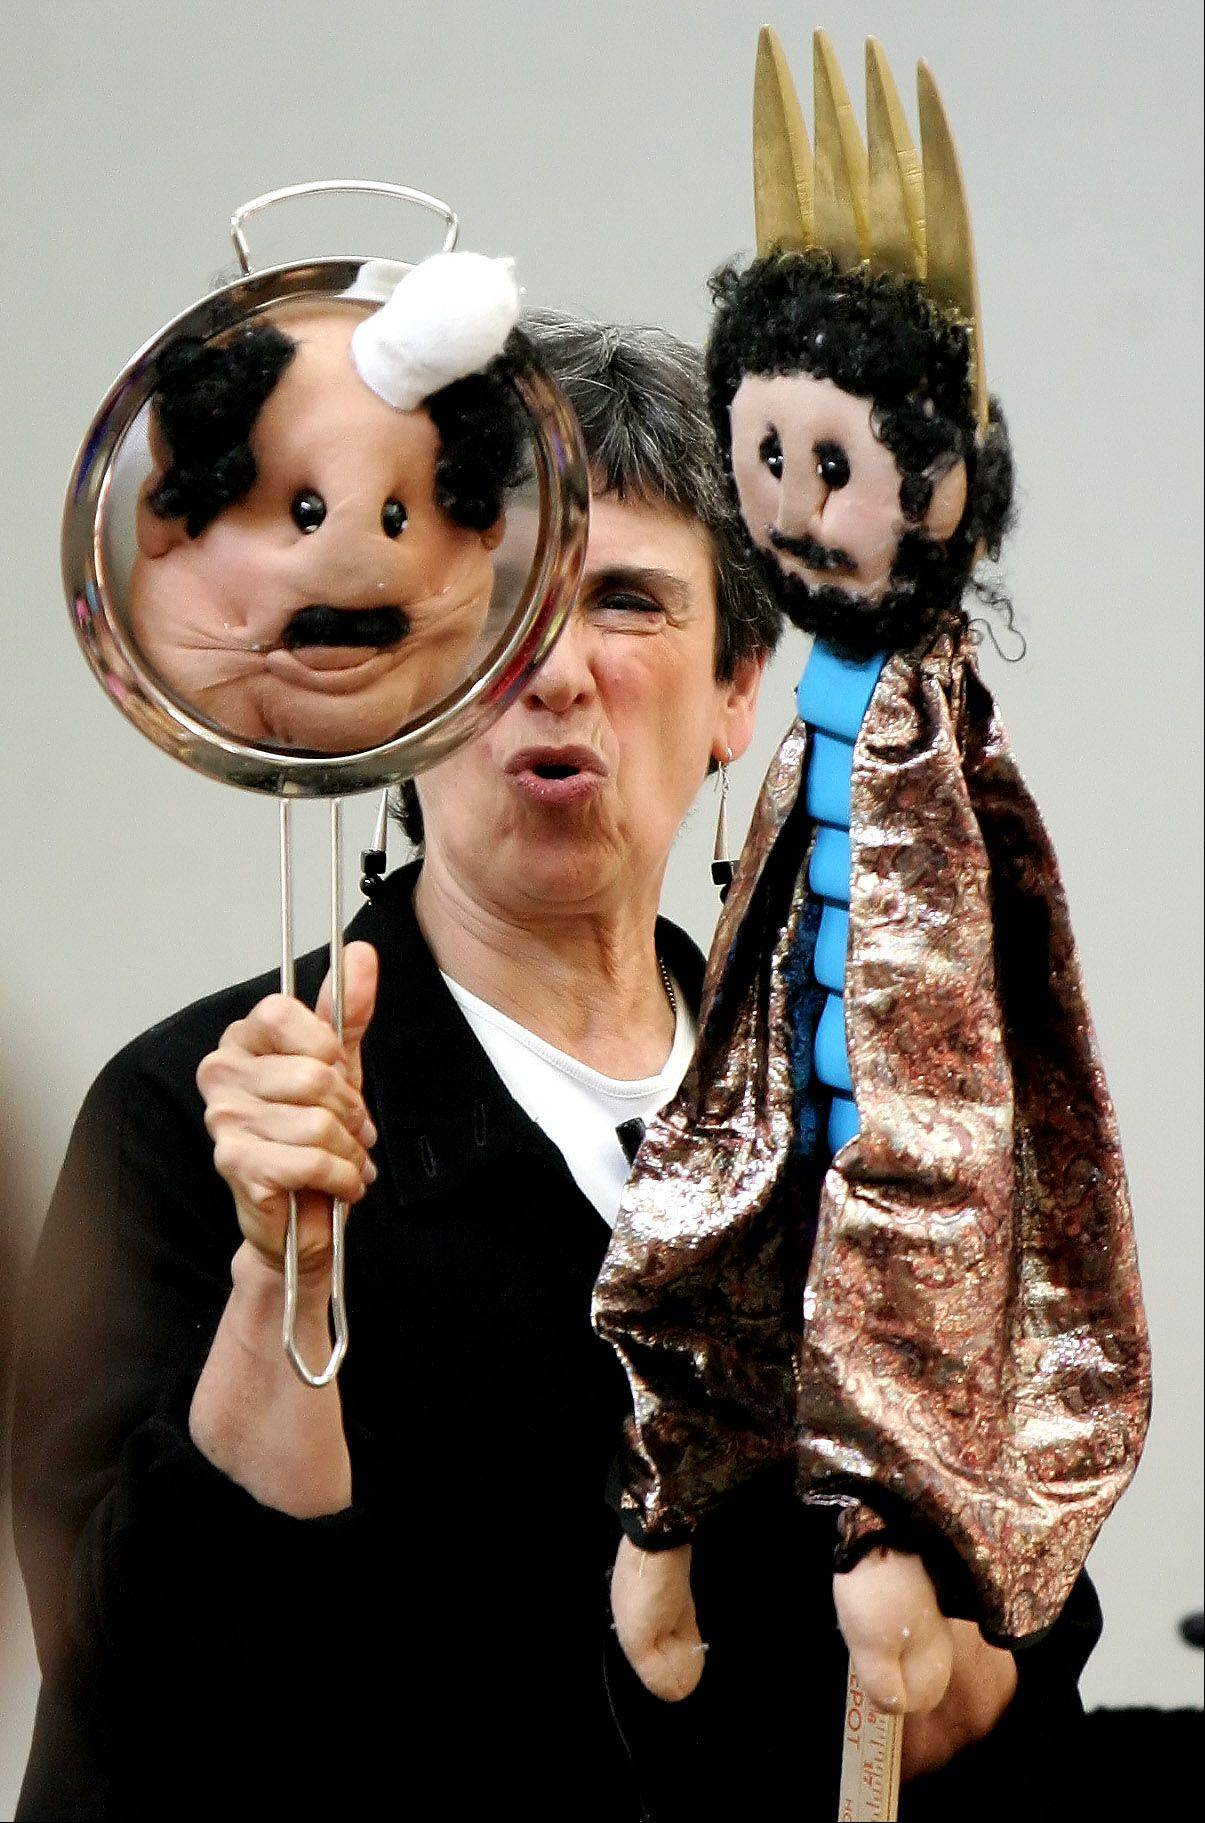 With her Wonderful World of Puppets, Marilyn Price brings storytelling to the children's area of Eyes to the Skies on Saturday.